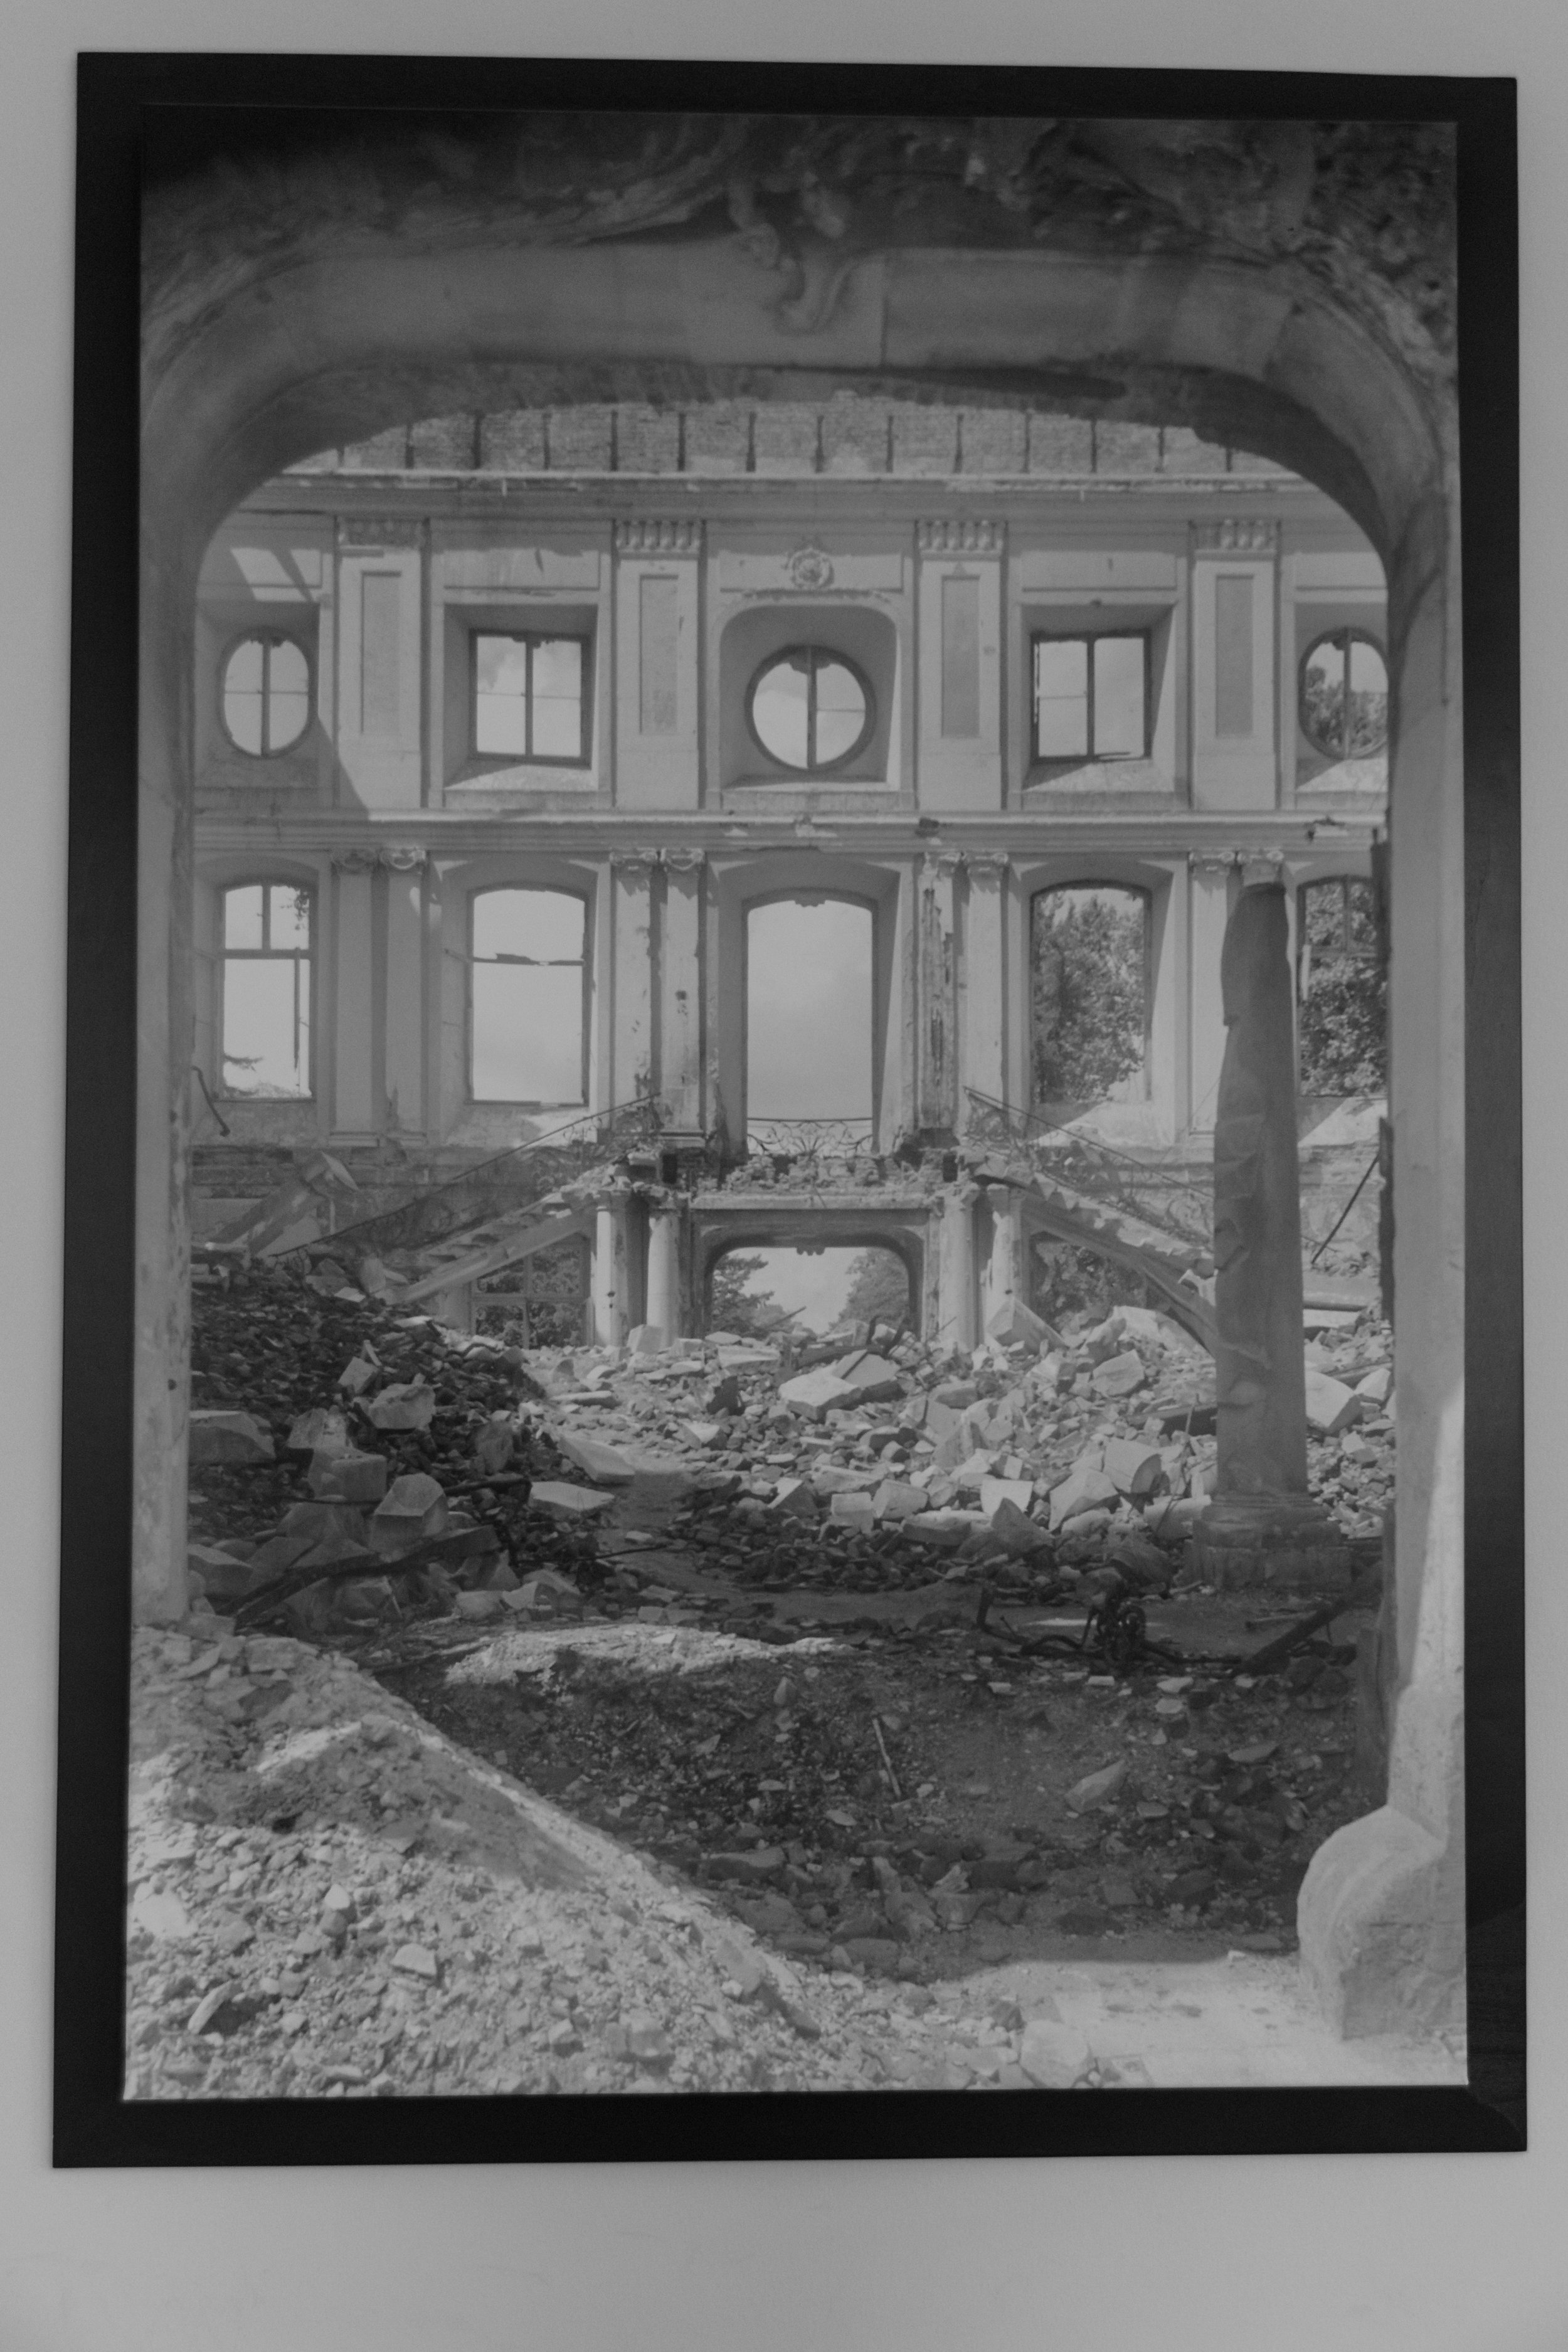 the palace after WWII